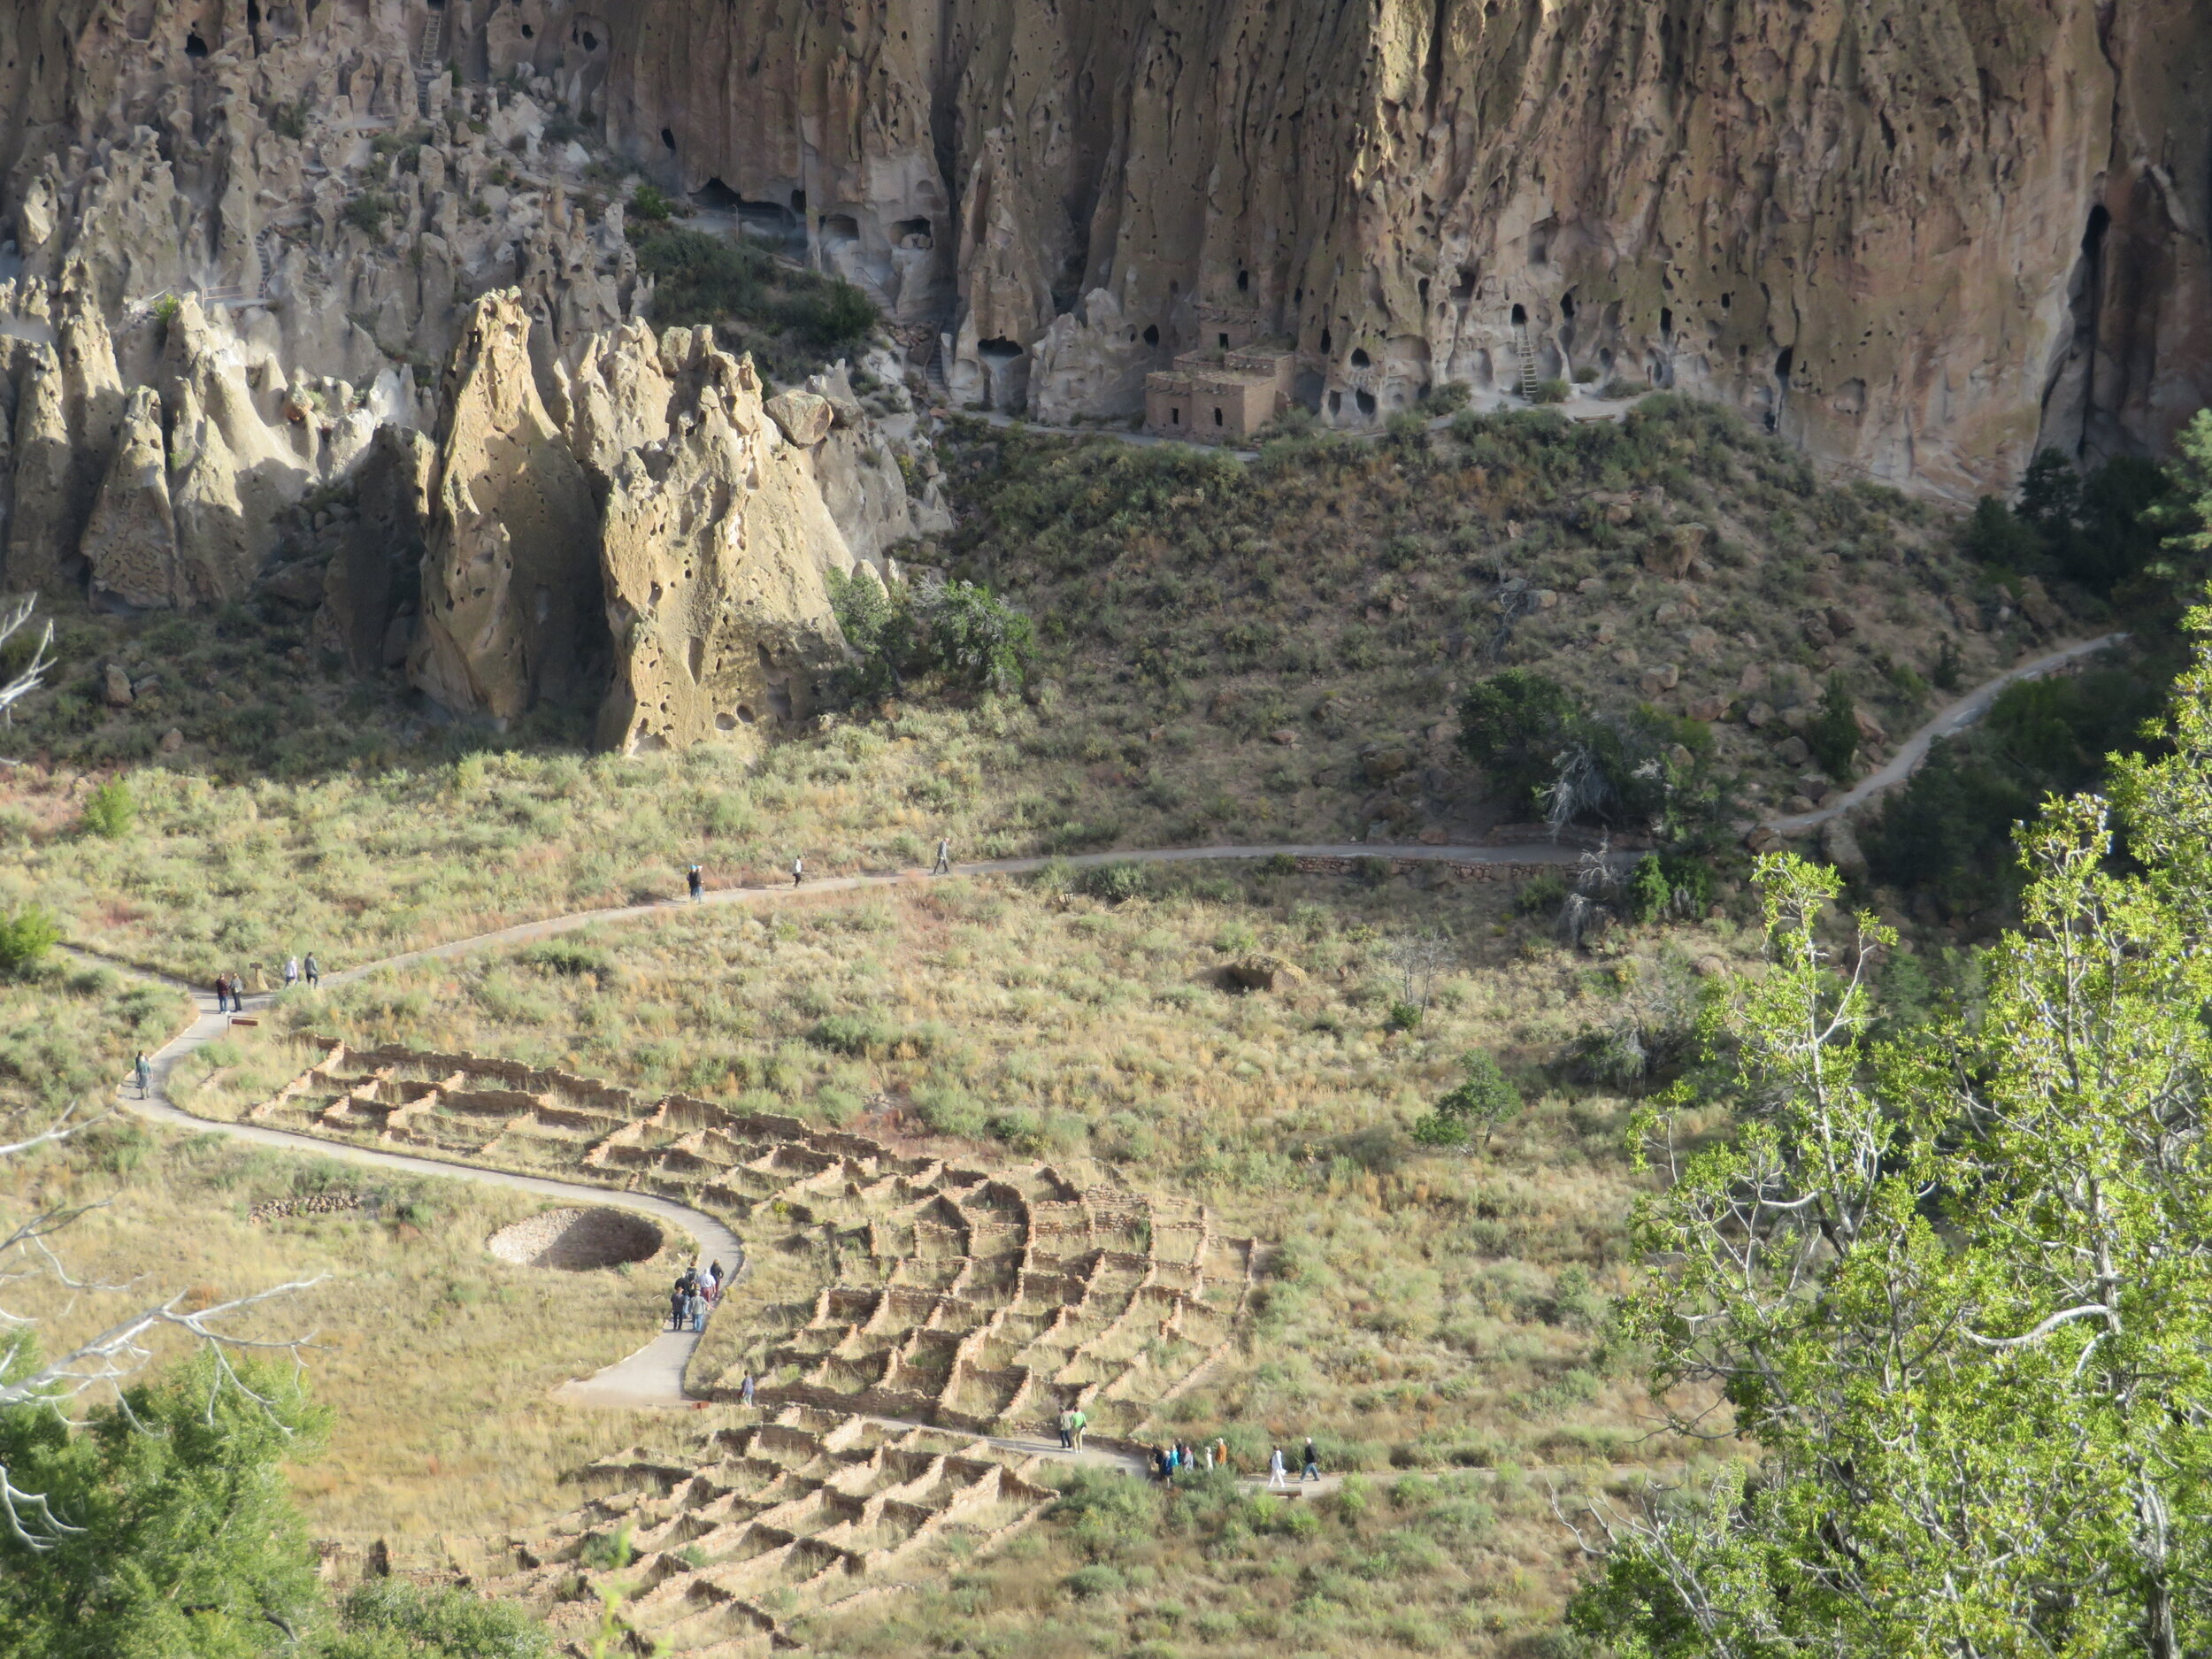 From the Frey Trail, we had great view of the ruins of the Tyuonyi (QU-weh-nee) village once inhabited by the Pueblo people.